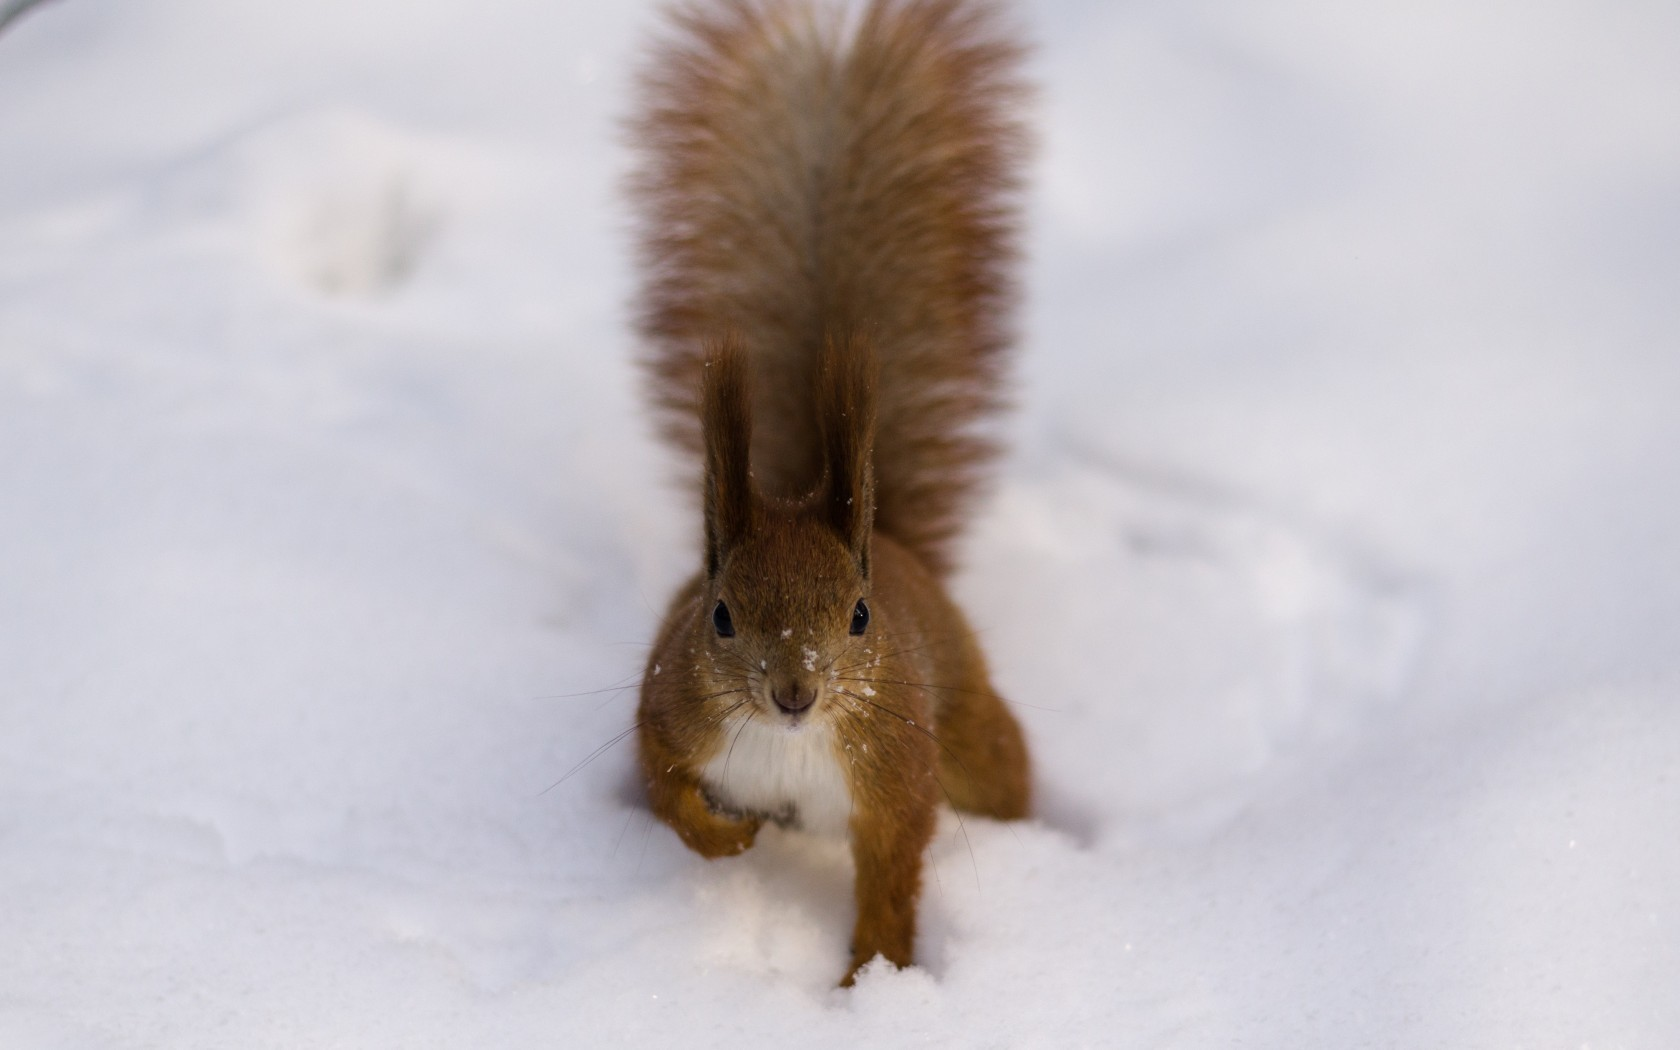 Squirrel clipart winter. Fluffy red snow tail